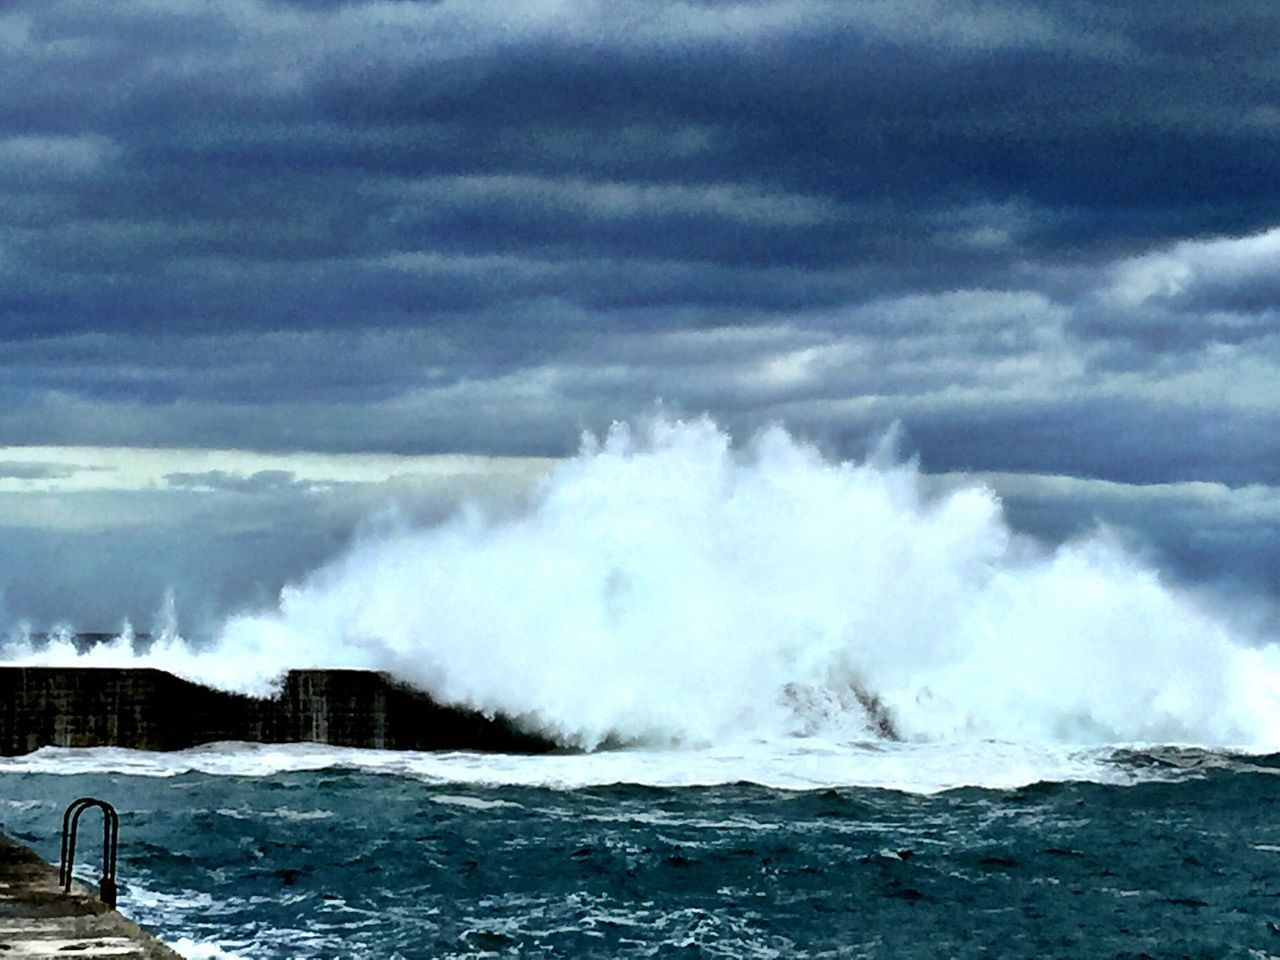 power in nature, sea, motion, water, breaking, nature, no people, outdoors, crash, force, rough, beauty in nature, day, sky, cloud - sky, wave, hitting